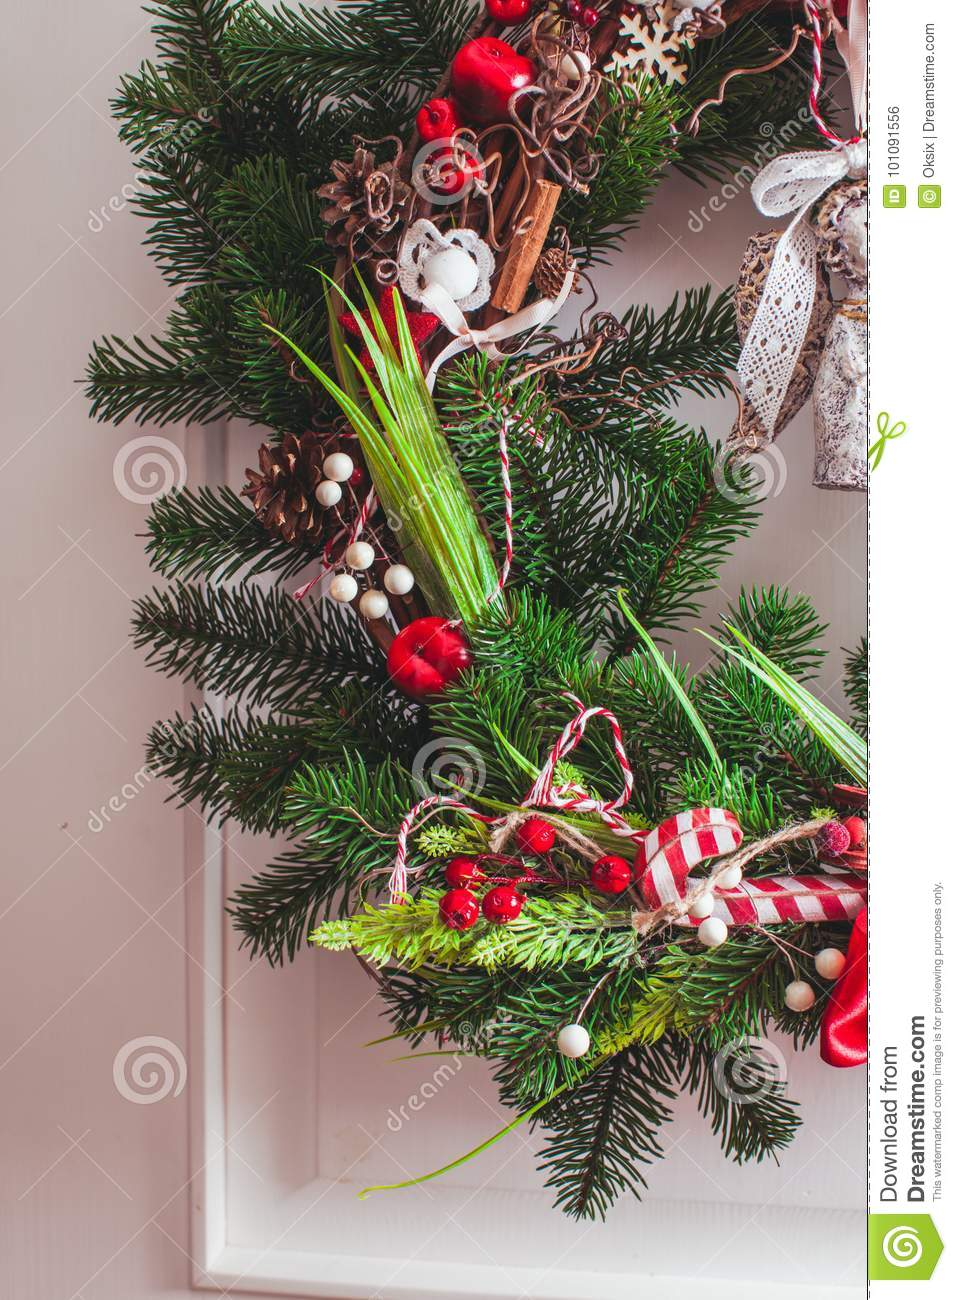 Red And White Christmas Wreath Stock Photo Image Of Shabby Home